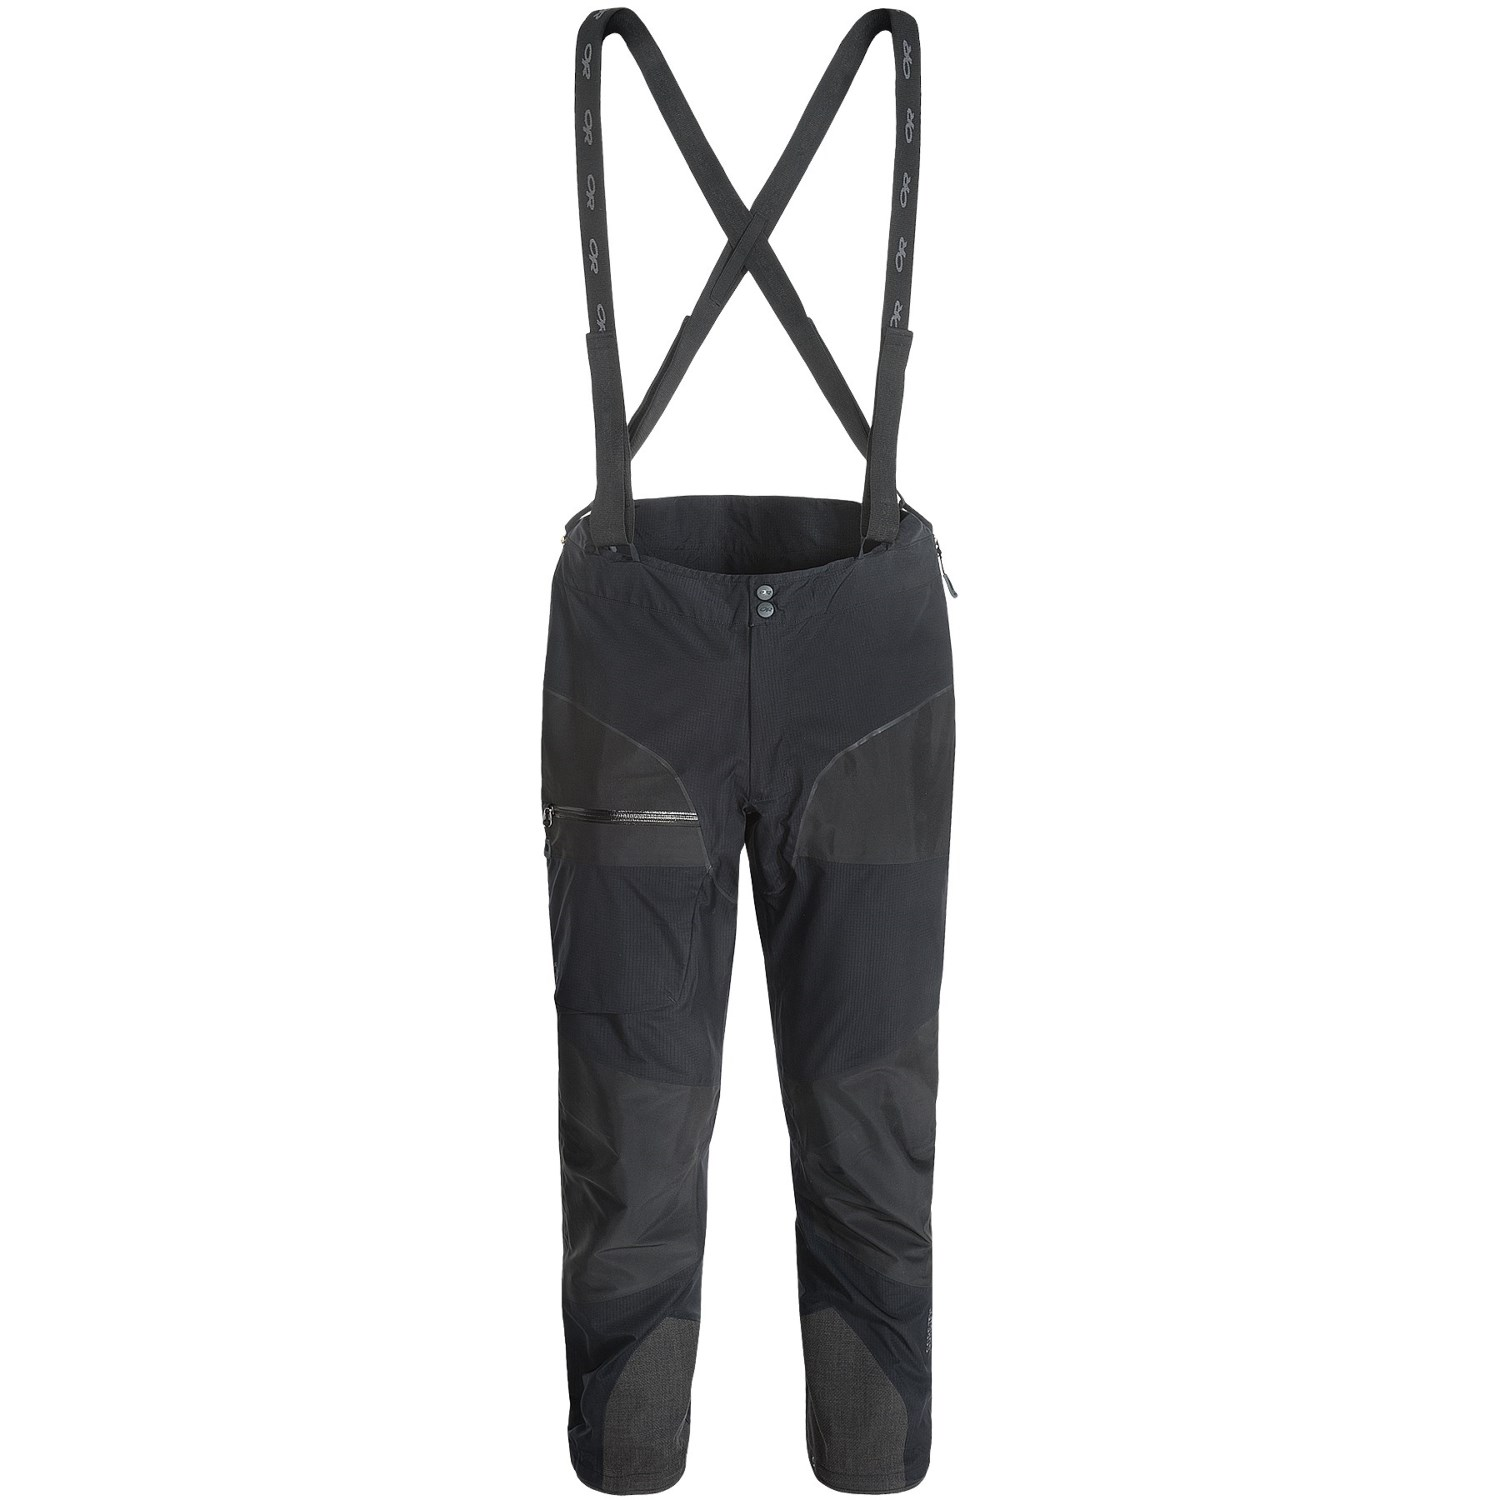 Outdoor Research Mentor Gore Tex 174 Pro Pants For Men